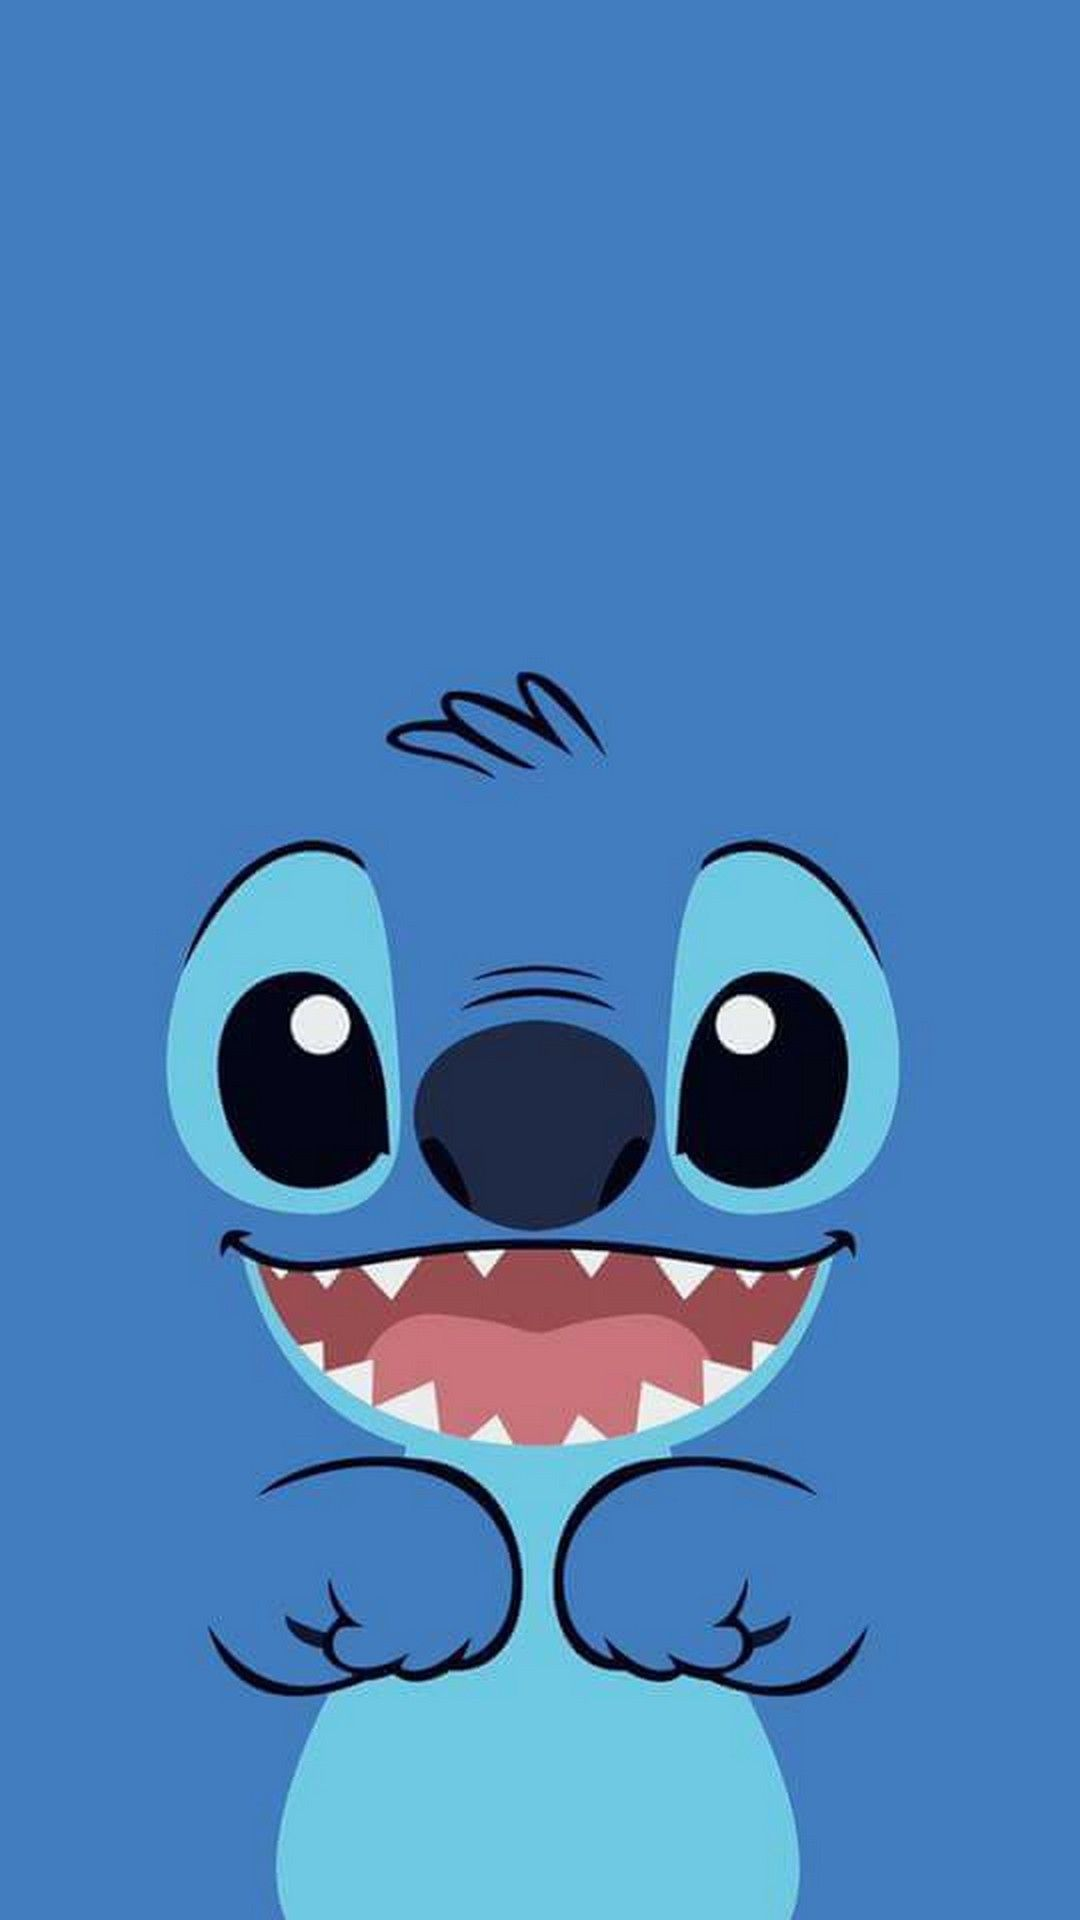 Stitch Disney Wallpapers Top Free Stitch Disney Backgrounds